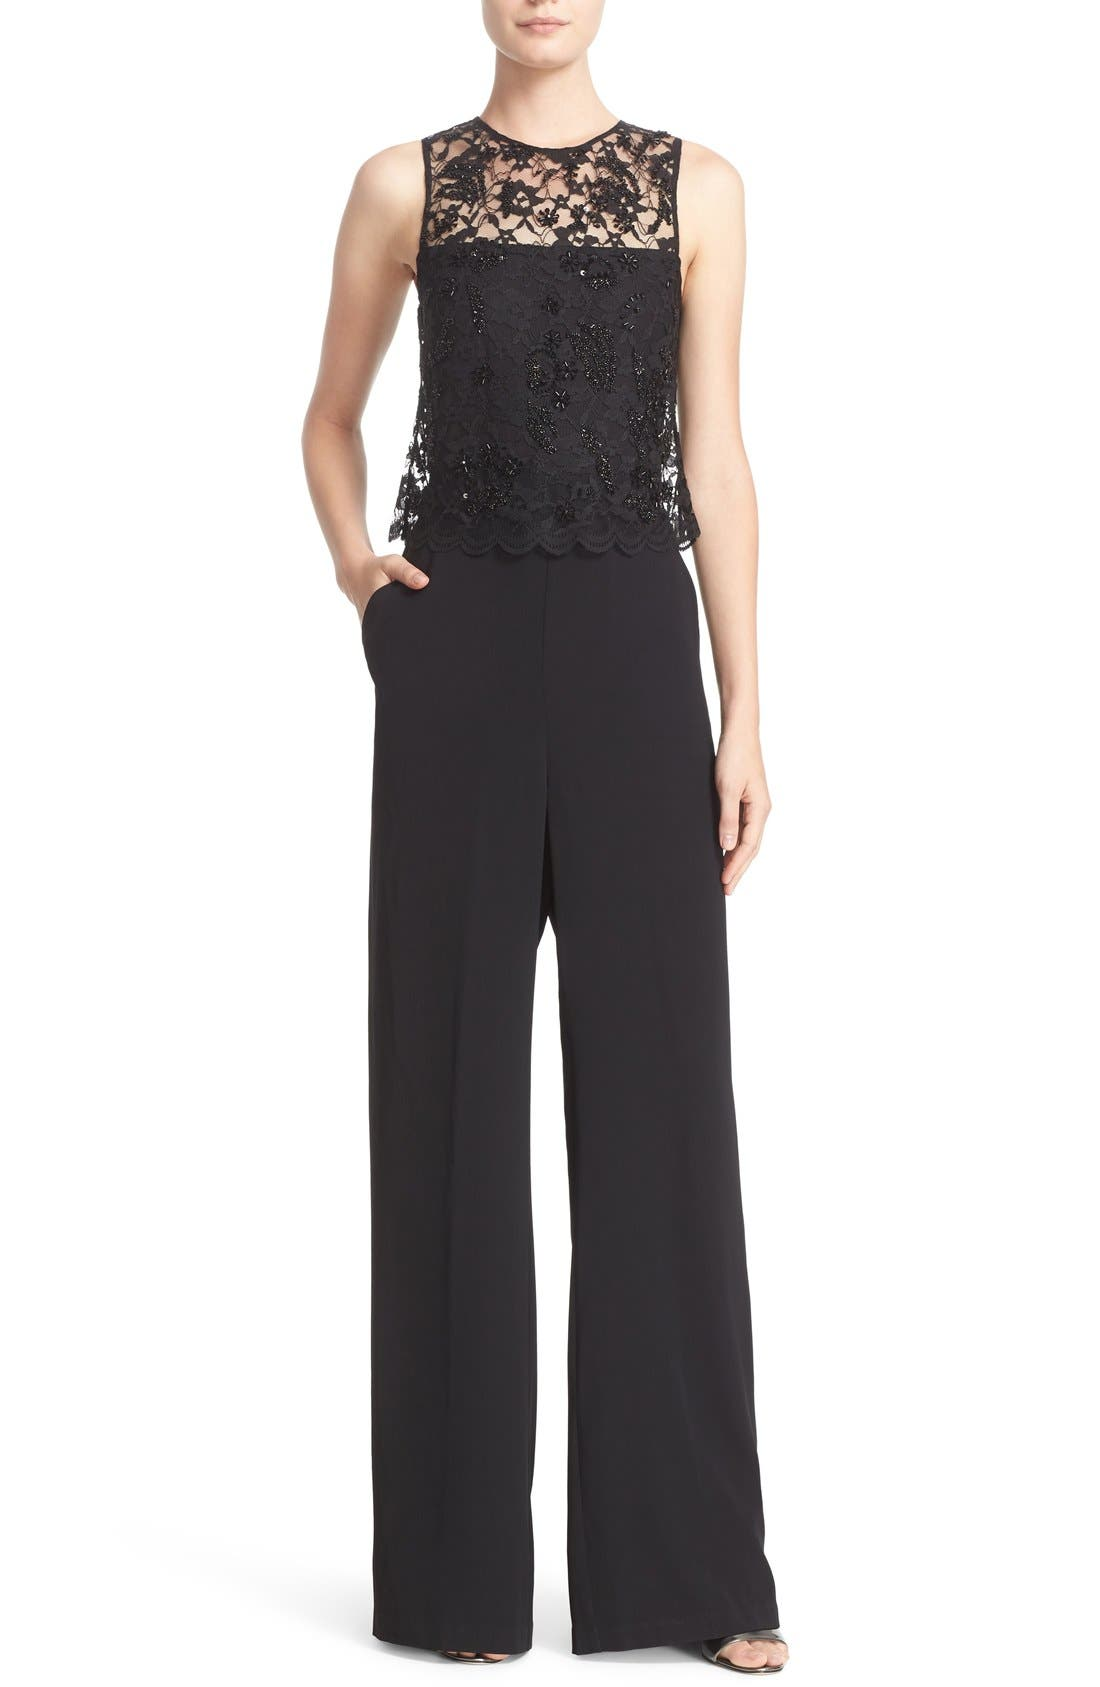 Alternate Image 1 Selected - Parker 'Maddie' Embellished Lace Overlay Jumpsuit